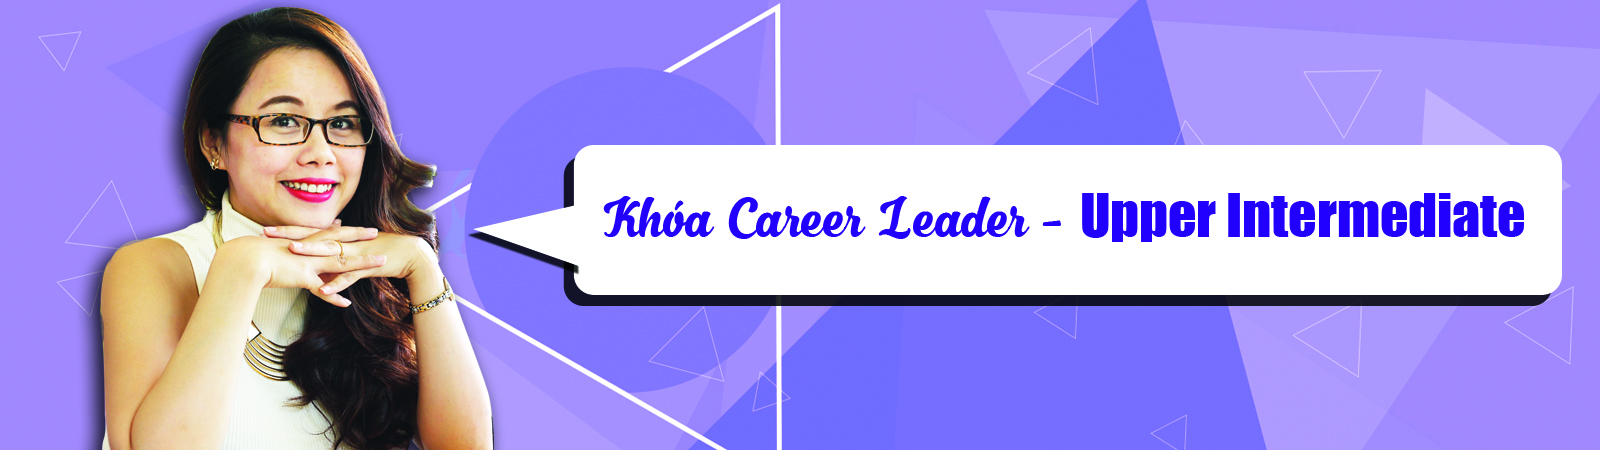 KHÓA GIAO TIÊP CAREER LEADER – UPPER INTERMEDIATE